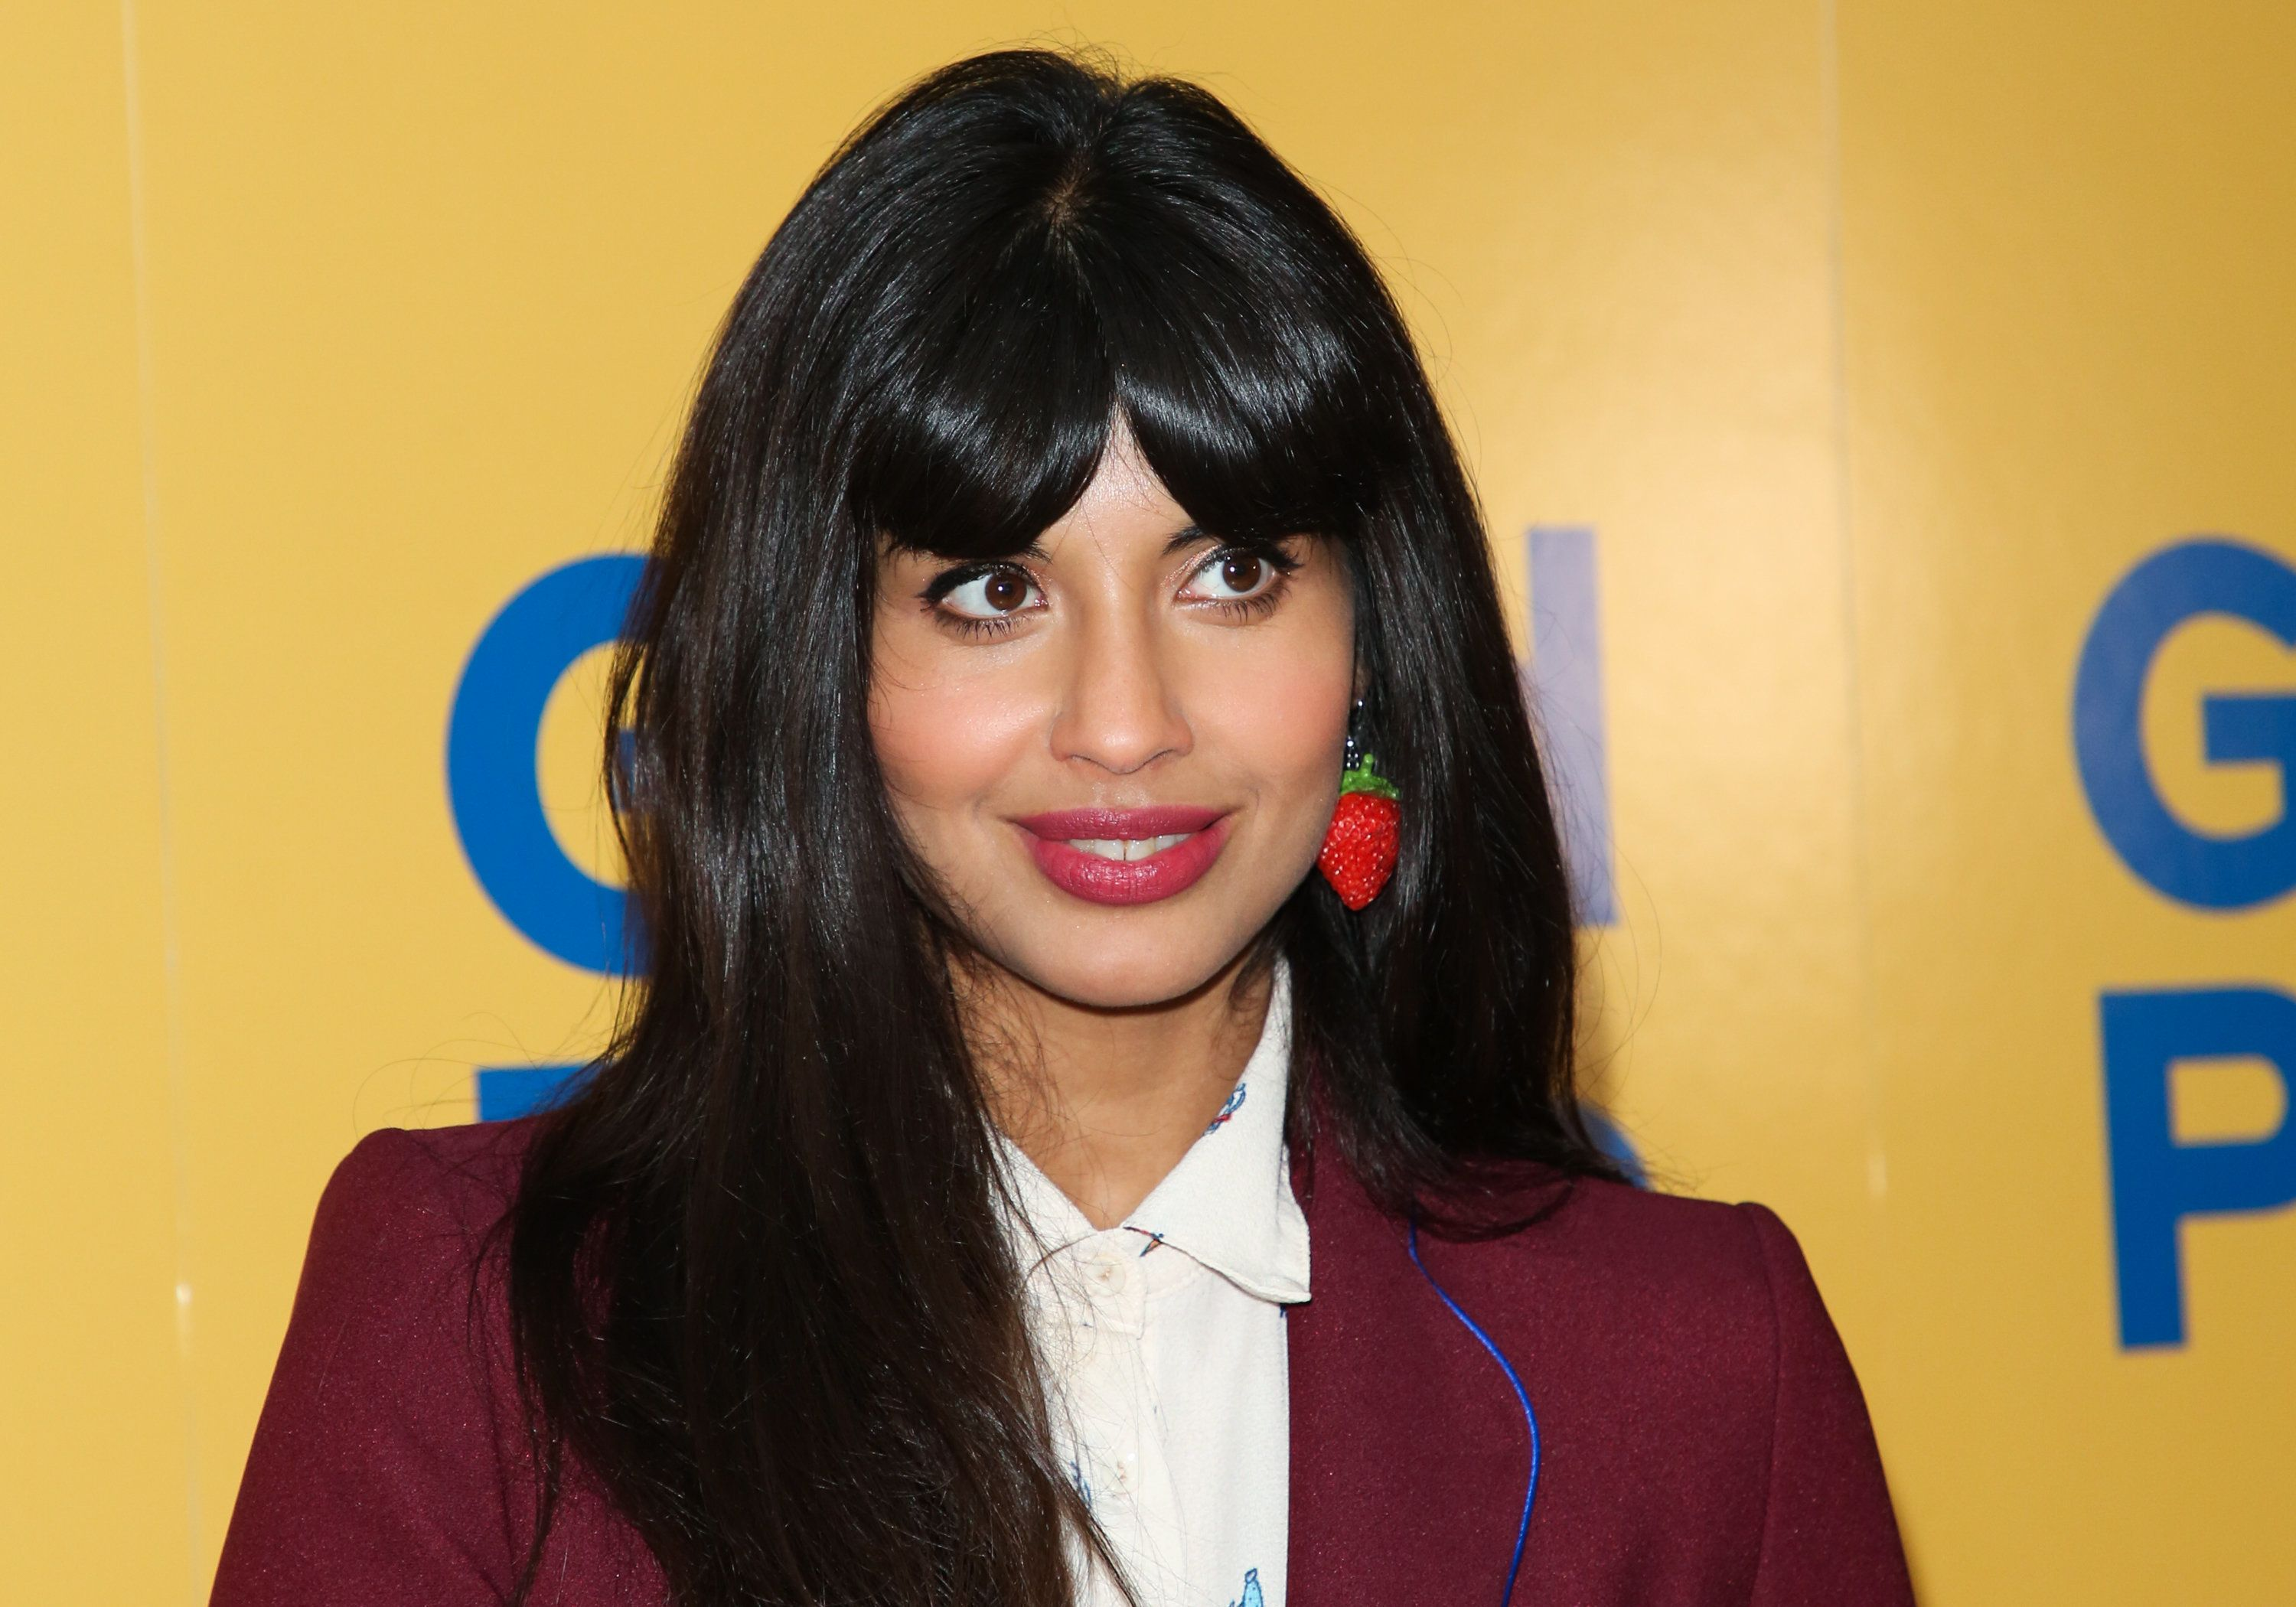 Jameela Jamil: Being Body-Shamed Showed Me We Need To Change Gym